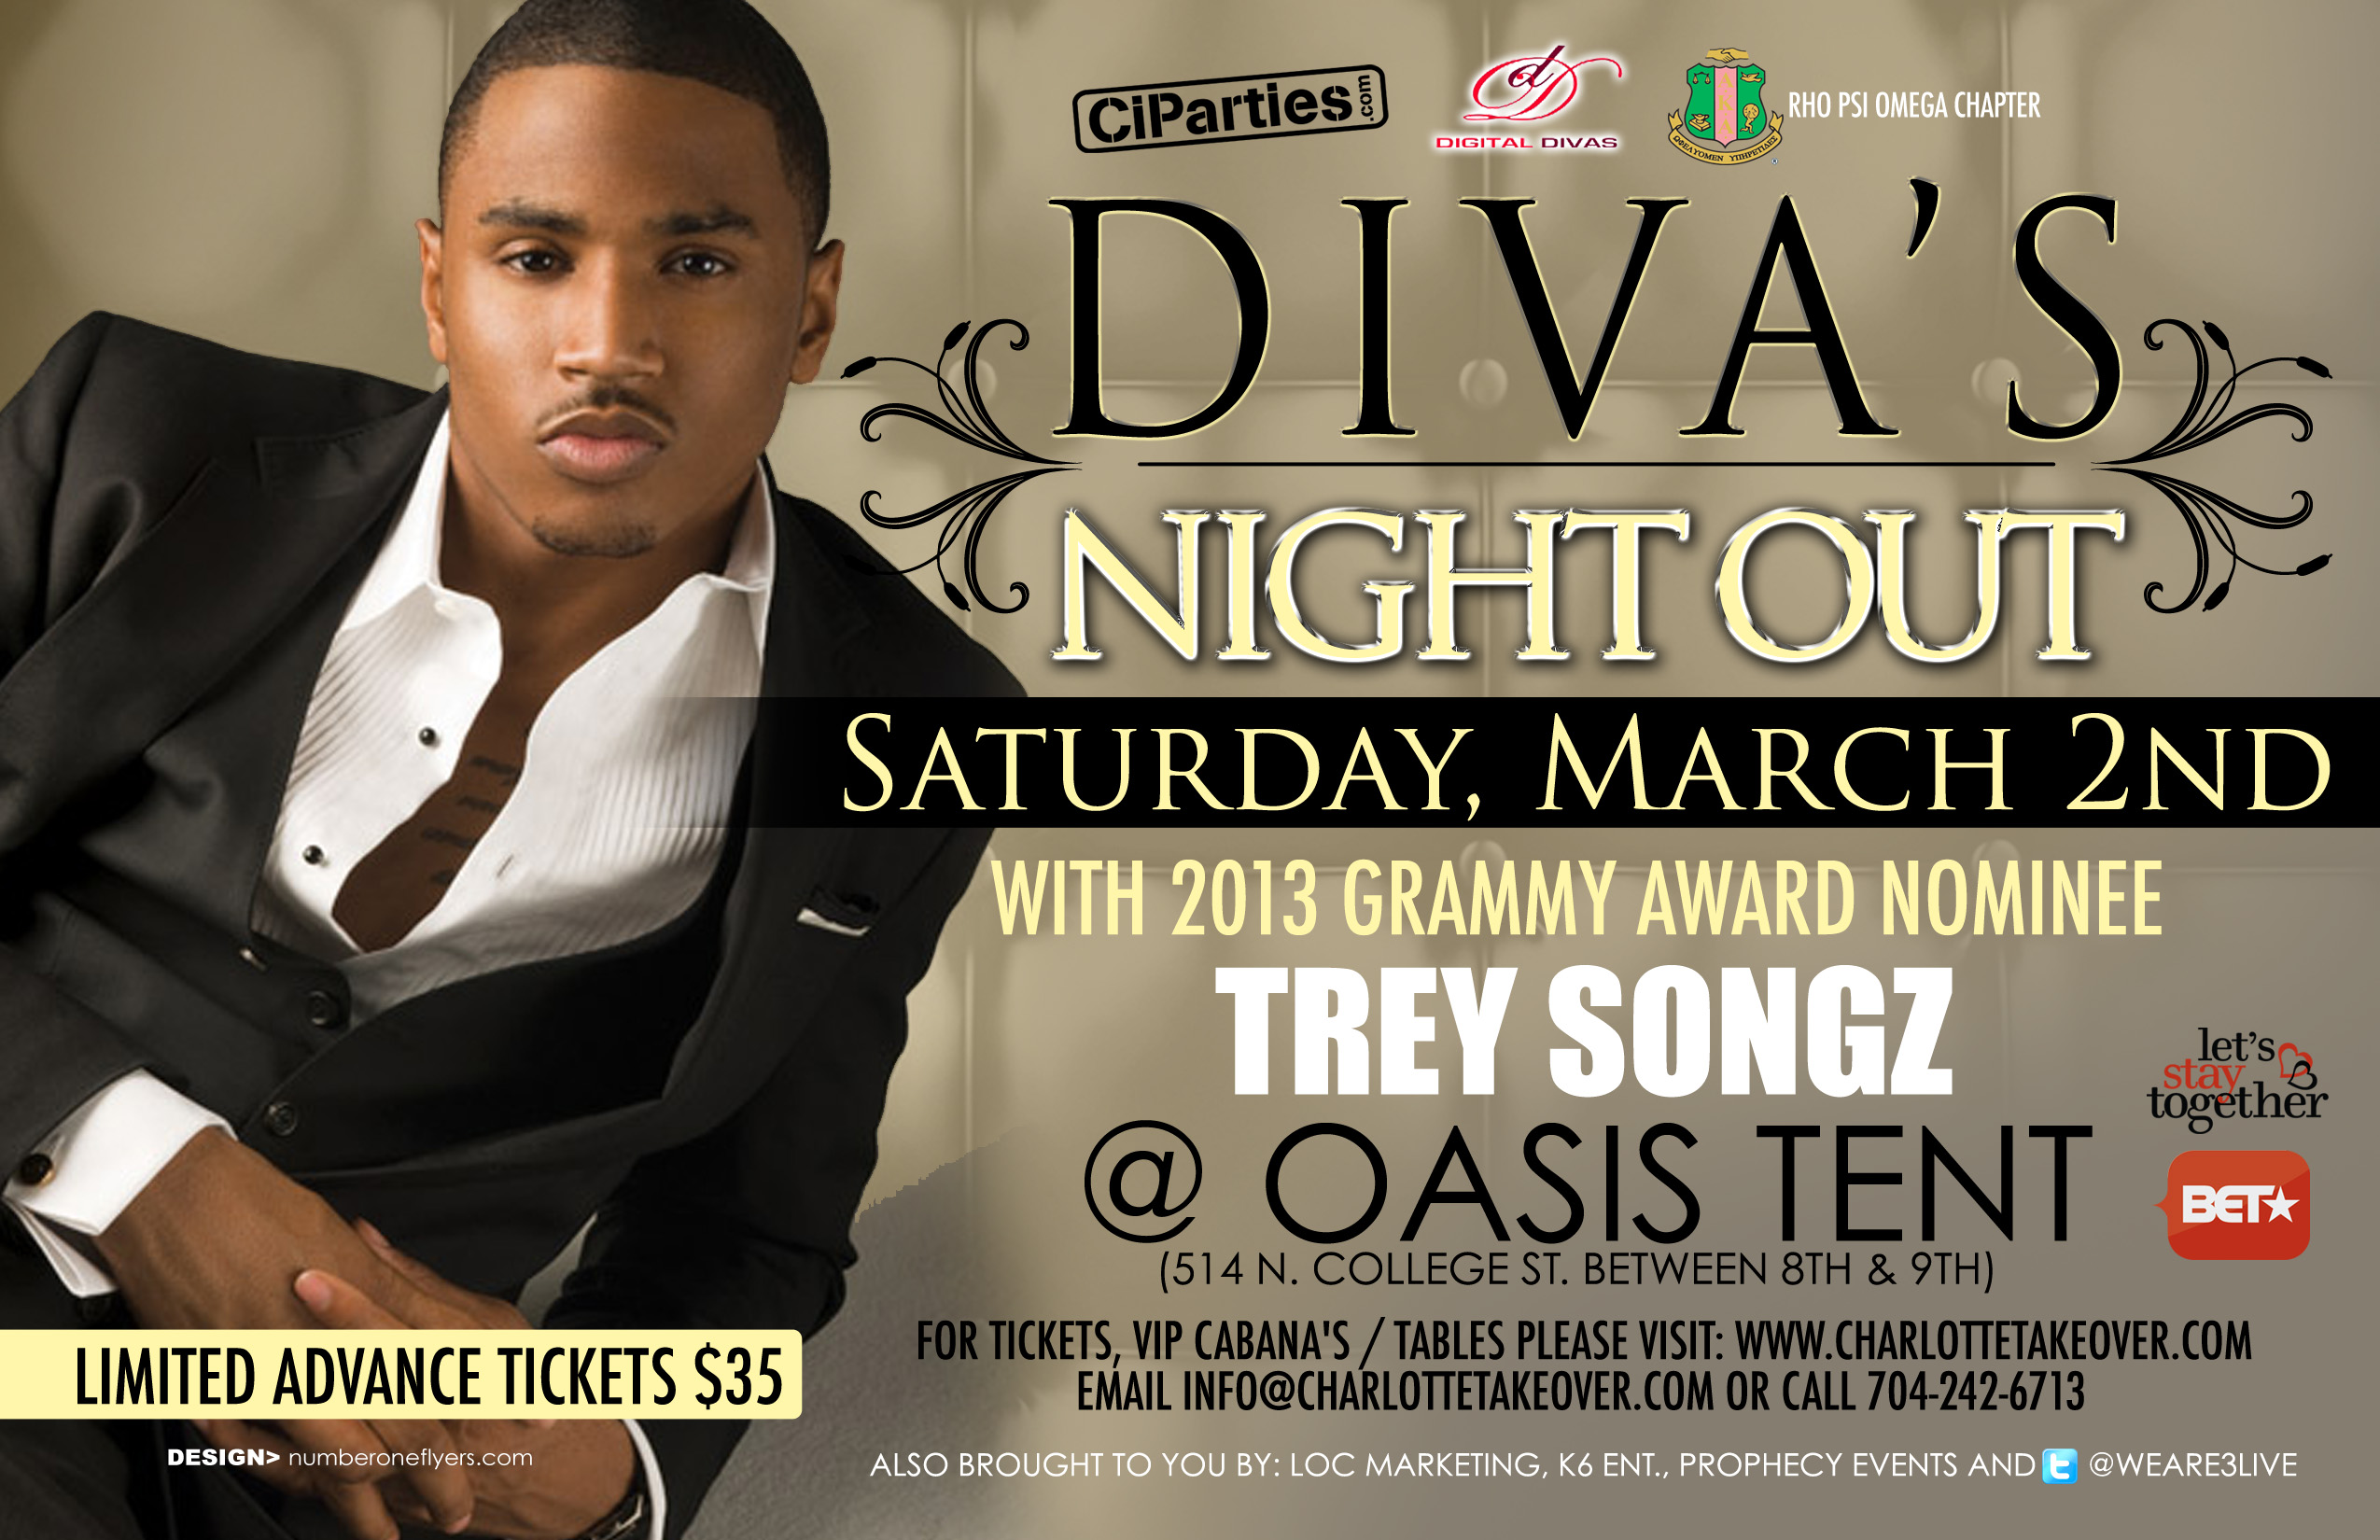 Tickets for Divas Night Out Feat Trey Songz in Charlotte from blender